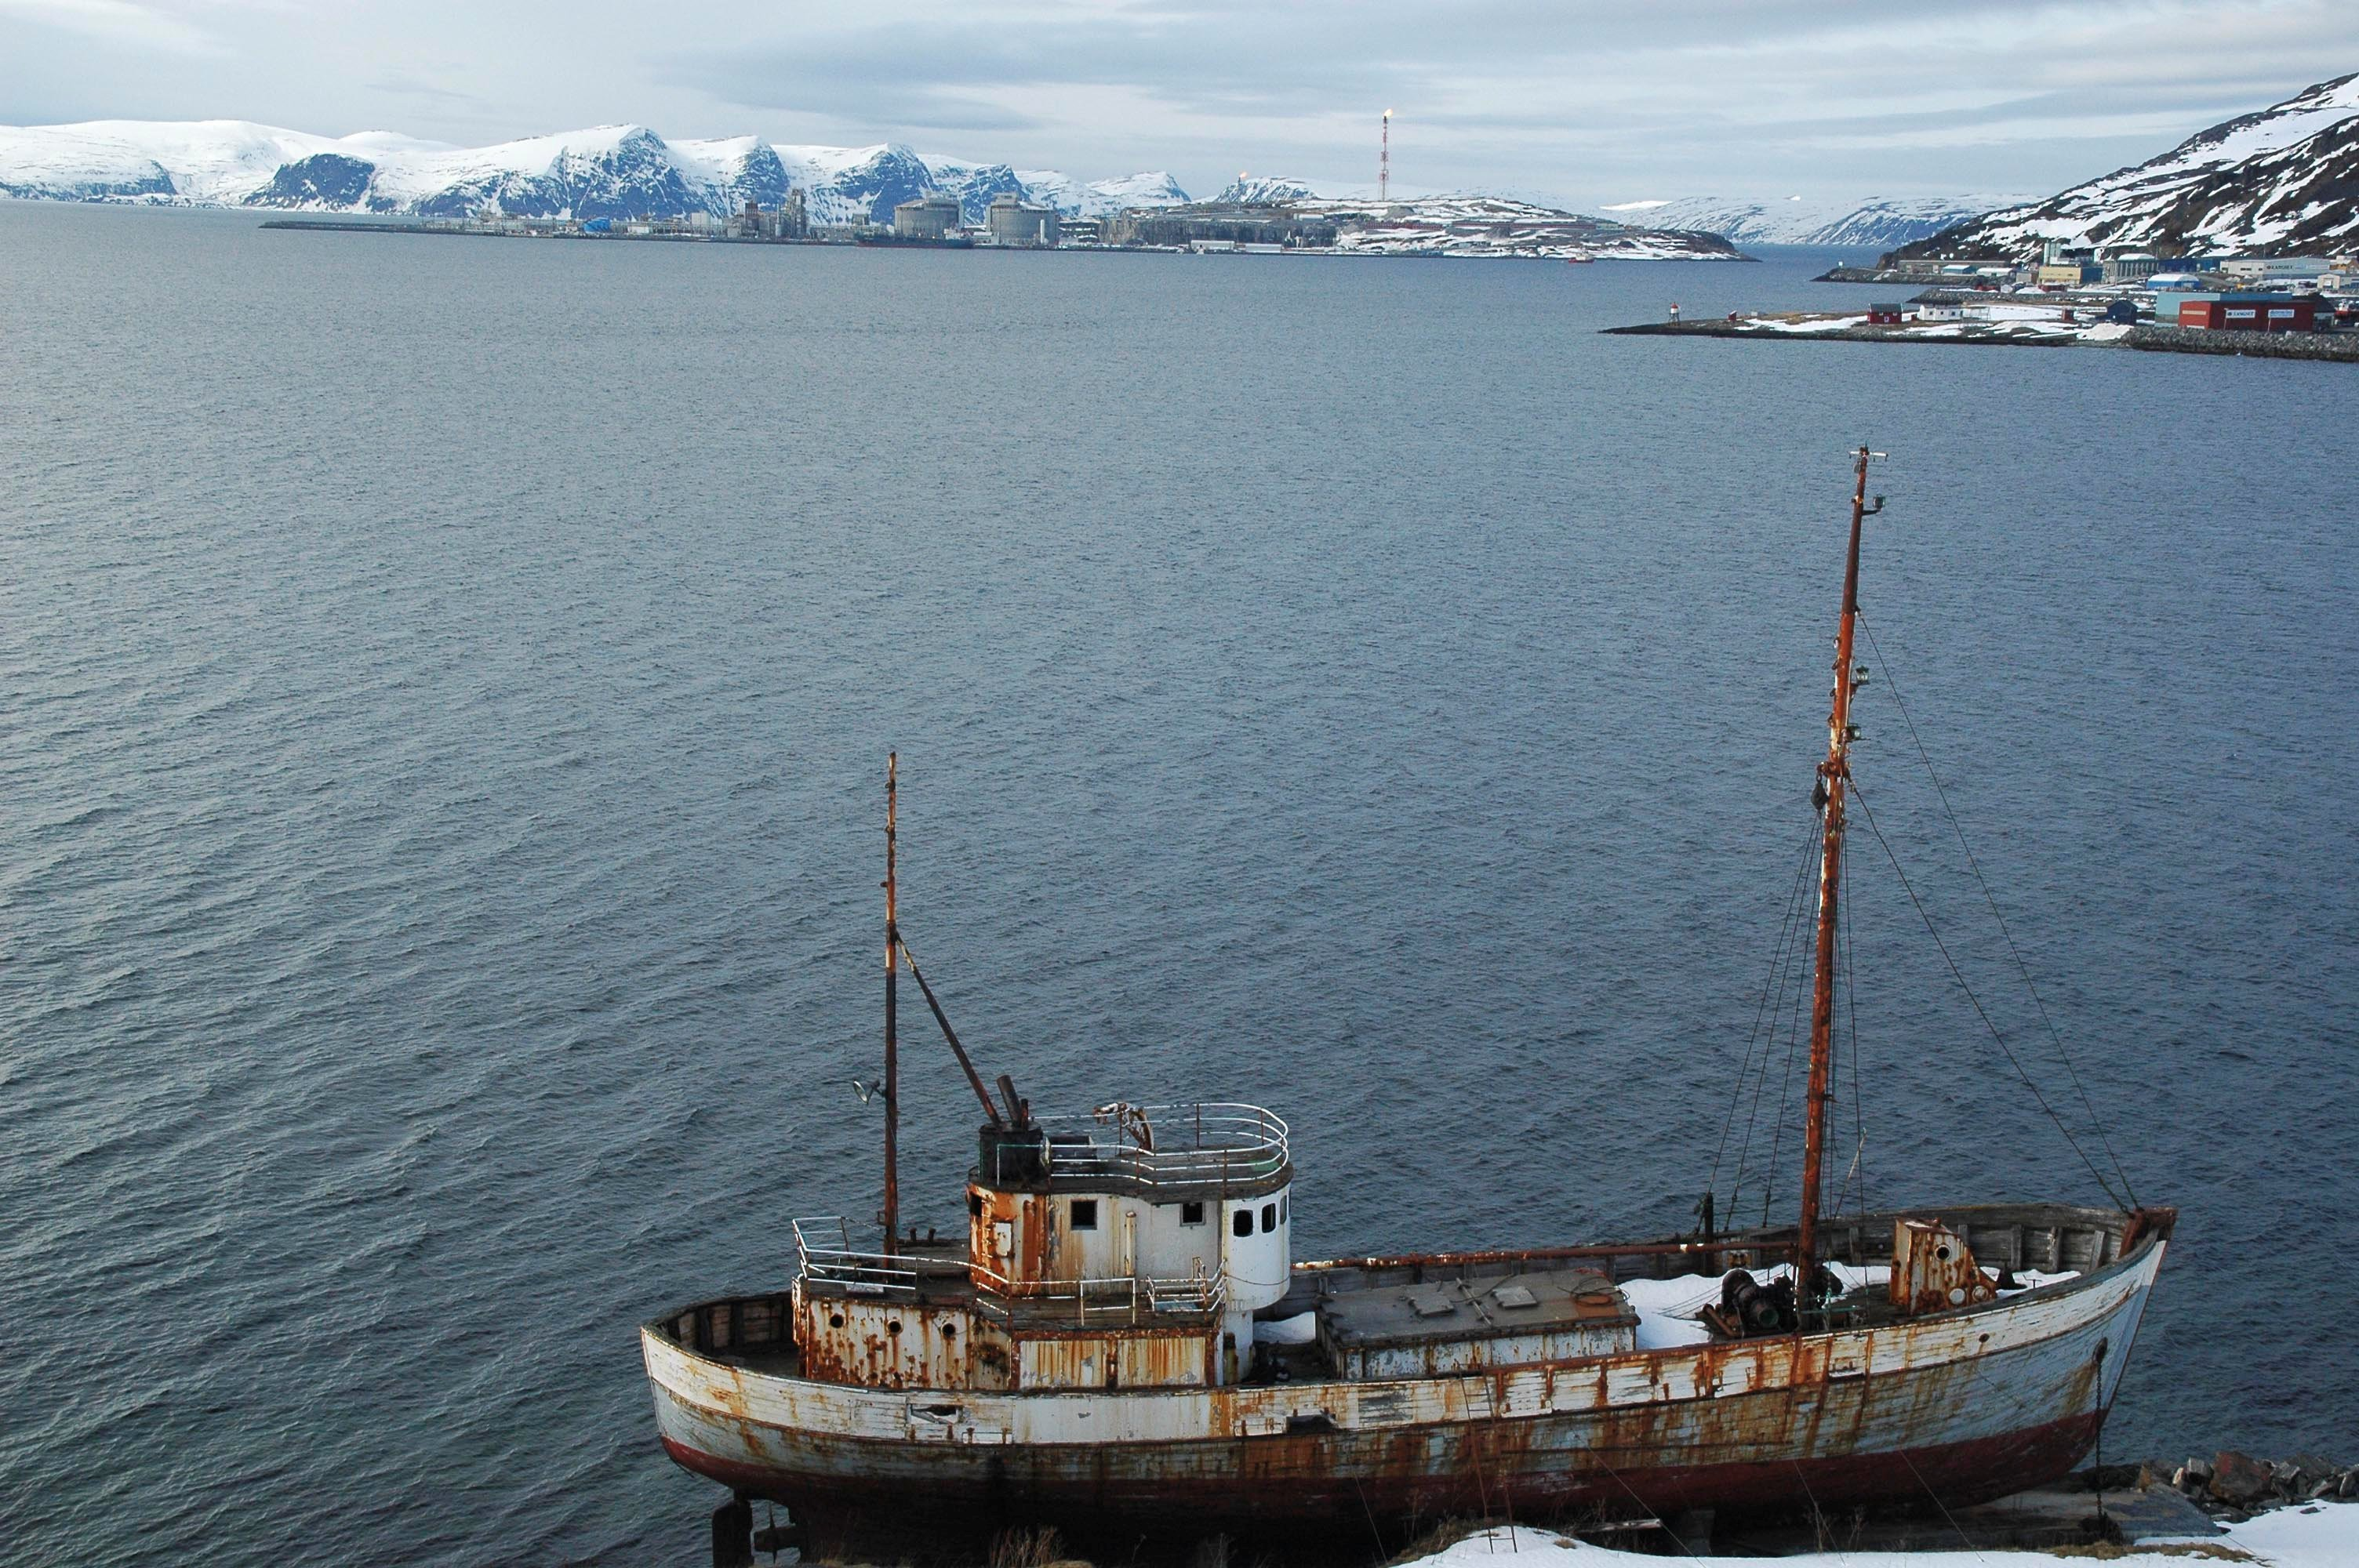 Oil experts eye 'significant resources' in Barents Sea along Norway-Russia border